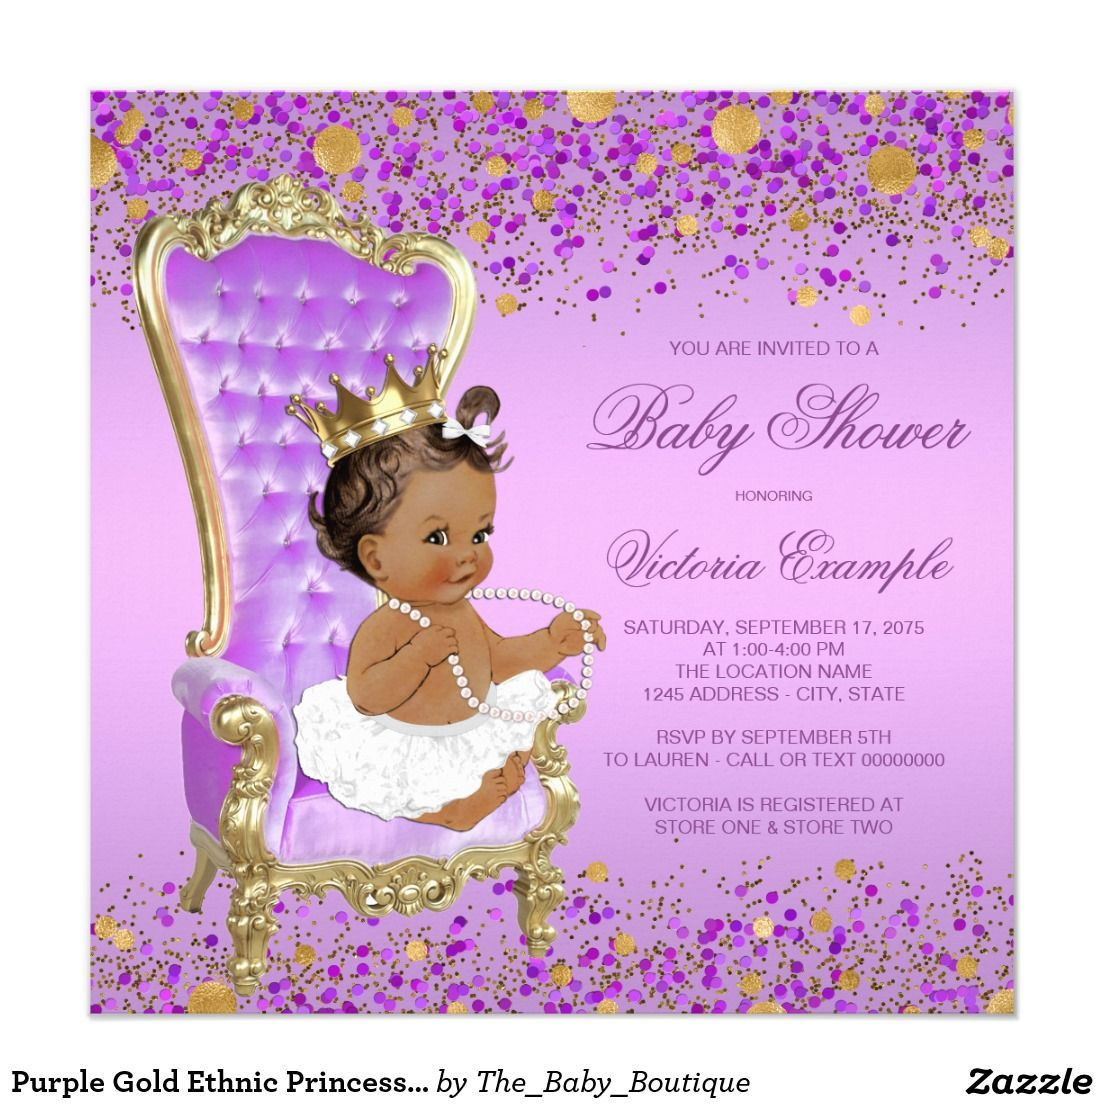 17 best images about ethnic girl baby shower ideas on pinterest, Baby shower invitations